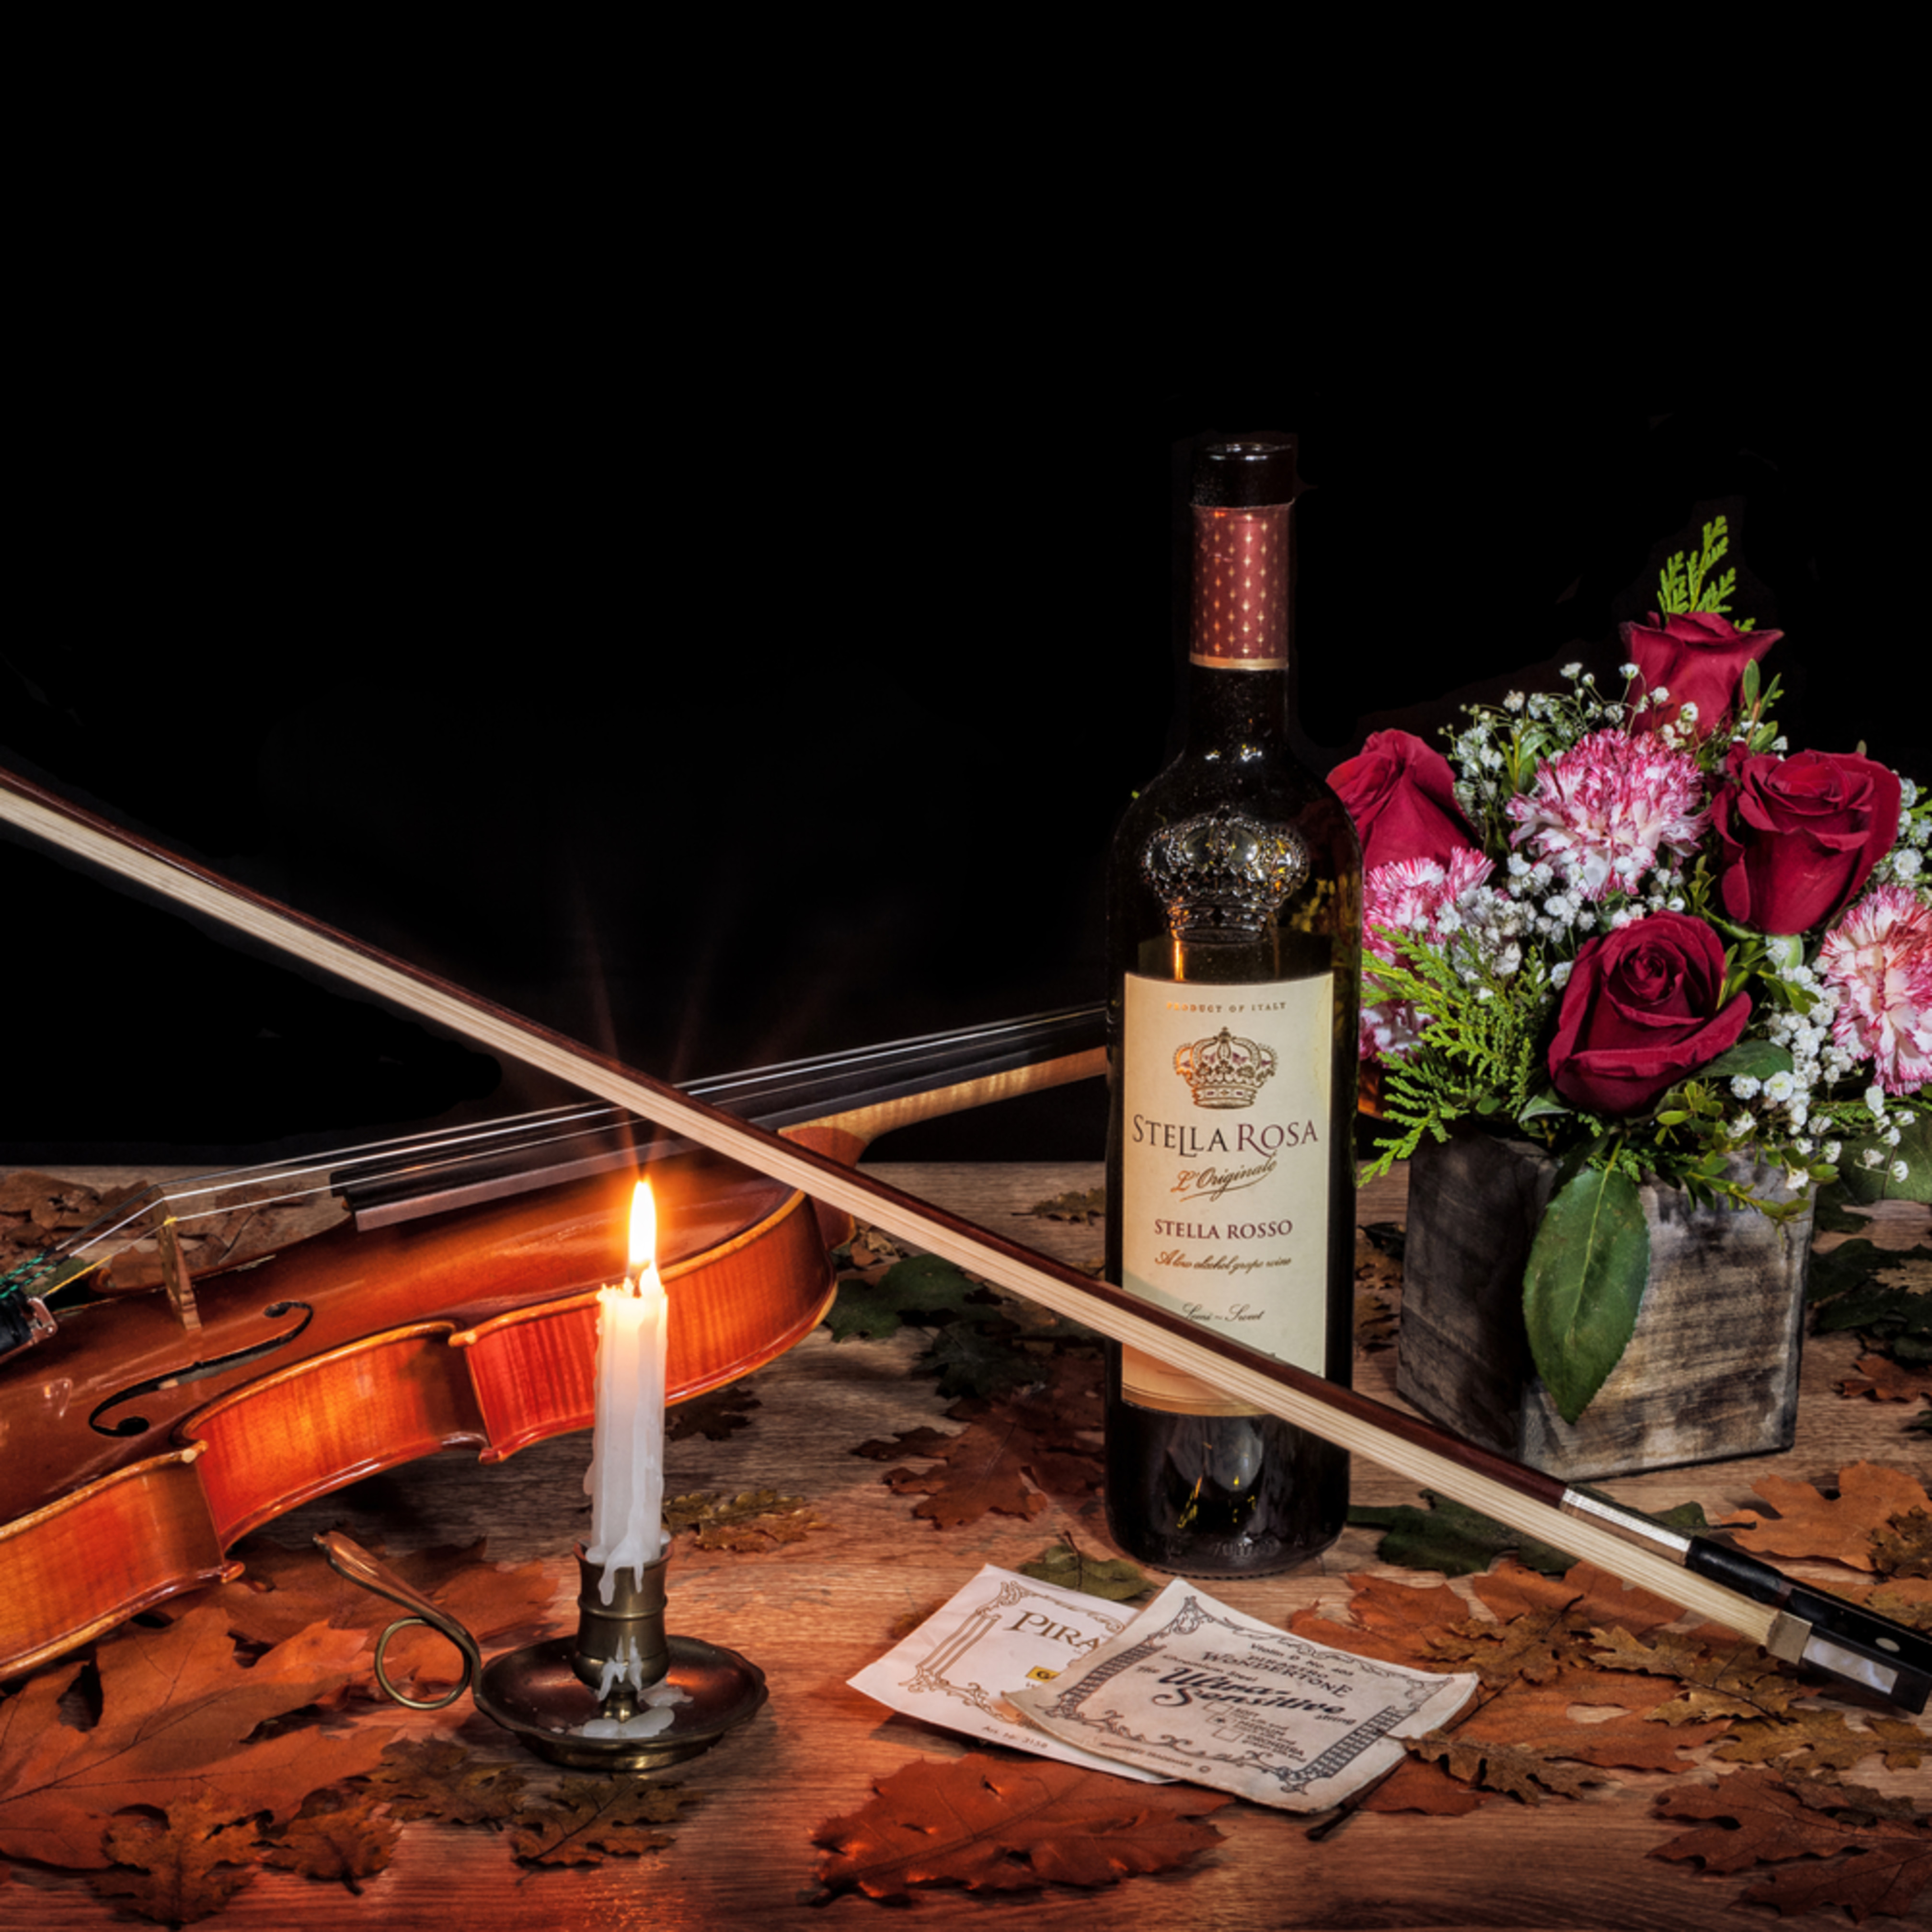 Wine roses and music 2 3 ratio drrrea